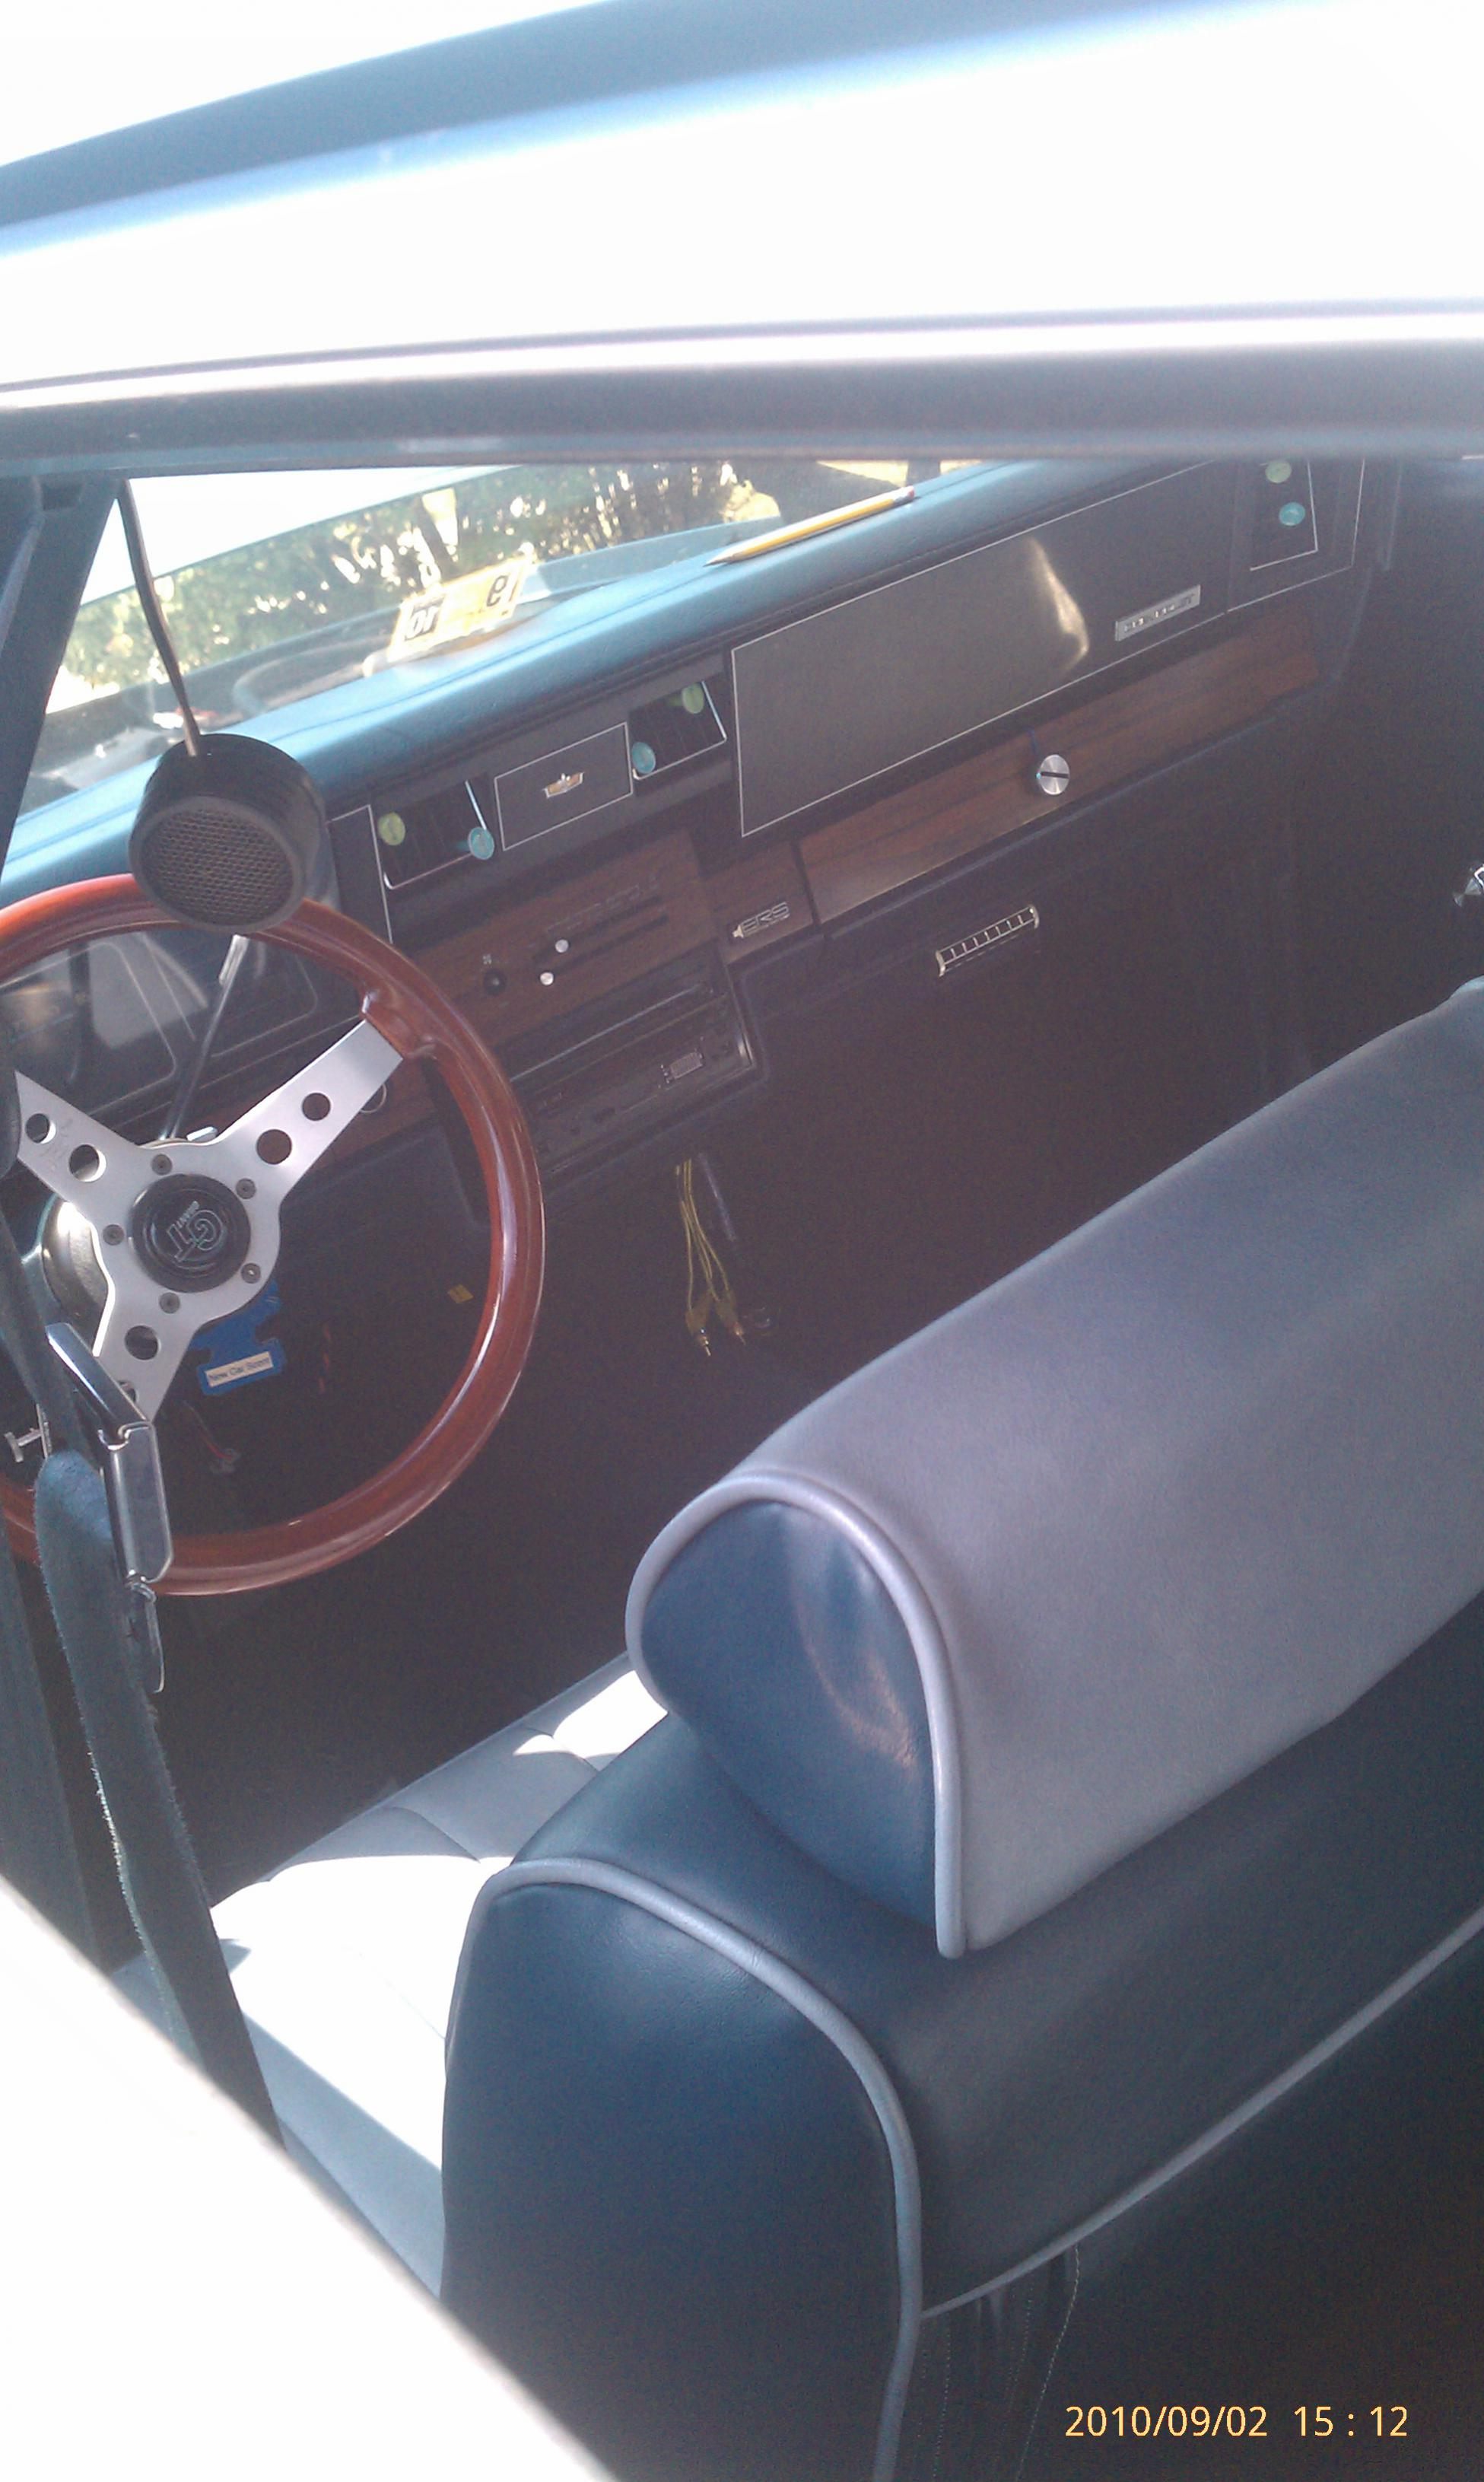 89 caprice 305 tbi - Chevy Impala Forums